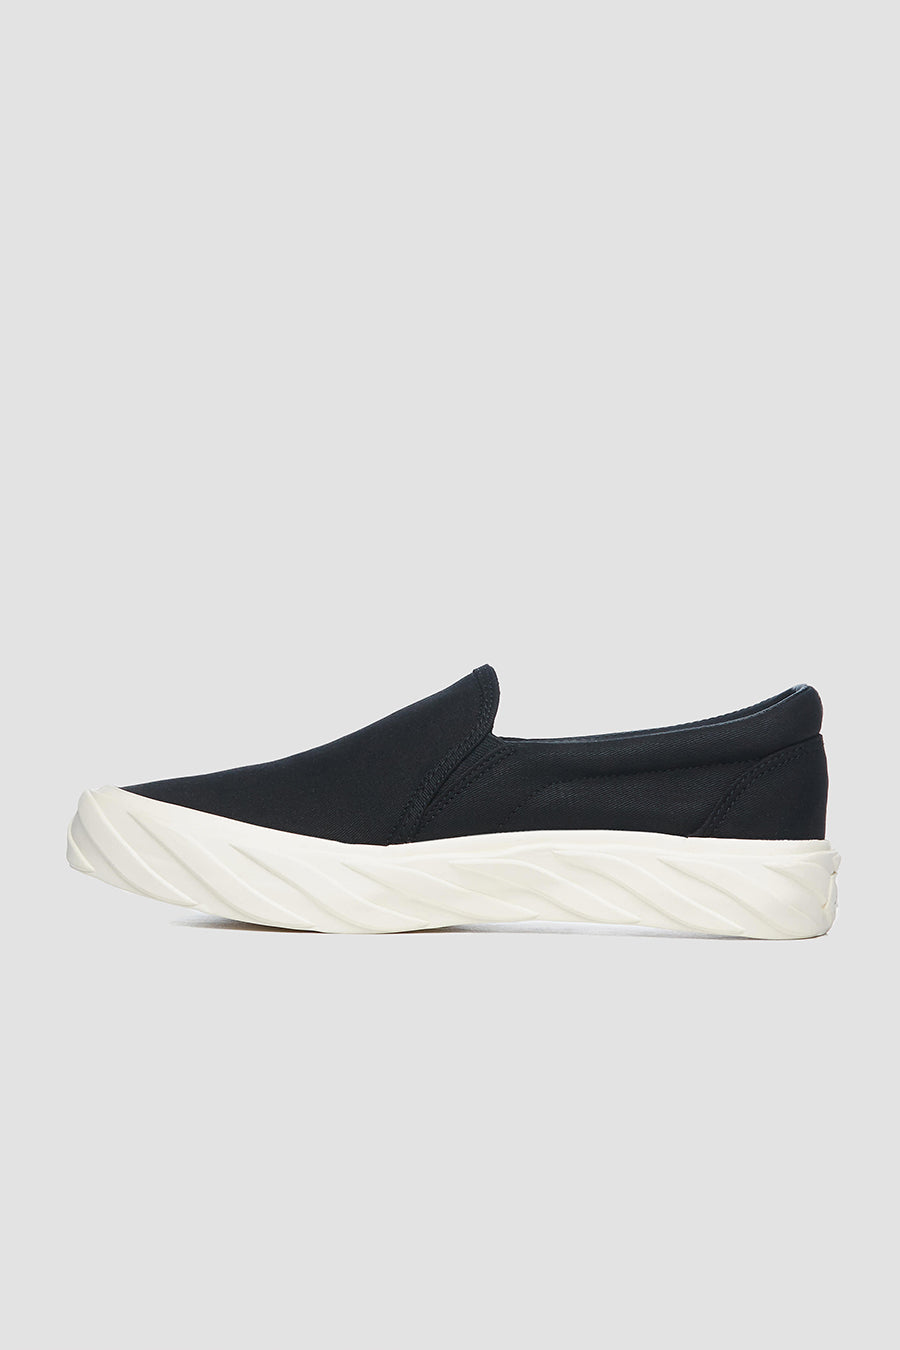 AGE - On Suede Sneakers